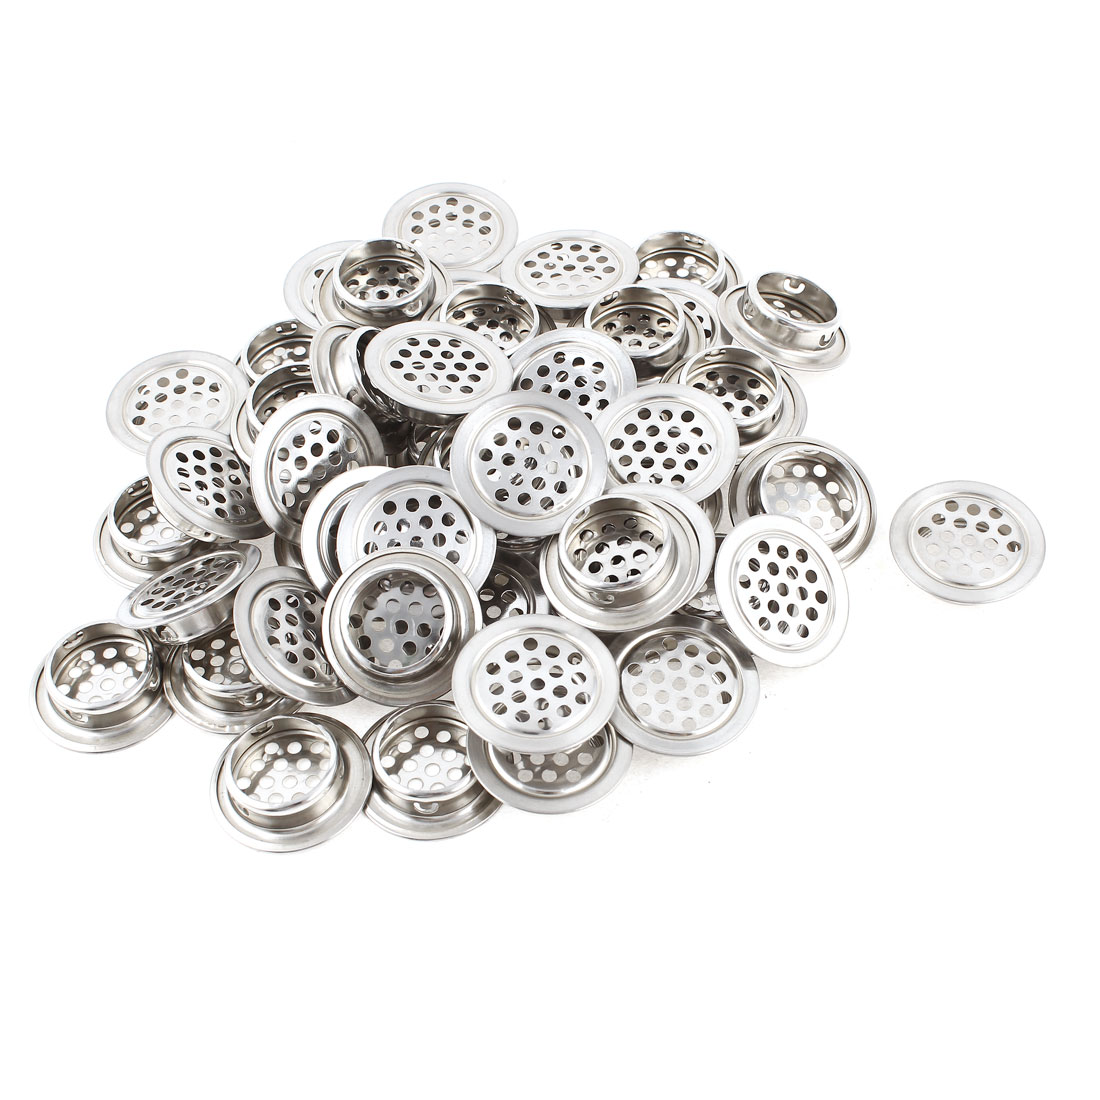 50 Pcs Silver Tone Stainless Steel Perforated Mesh Cabinet Air Vents Mini Louvers 25mm